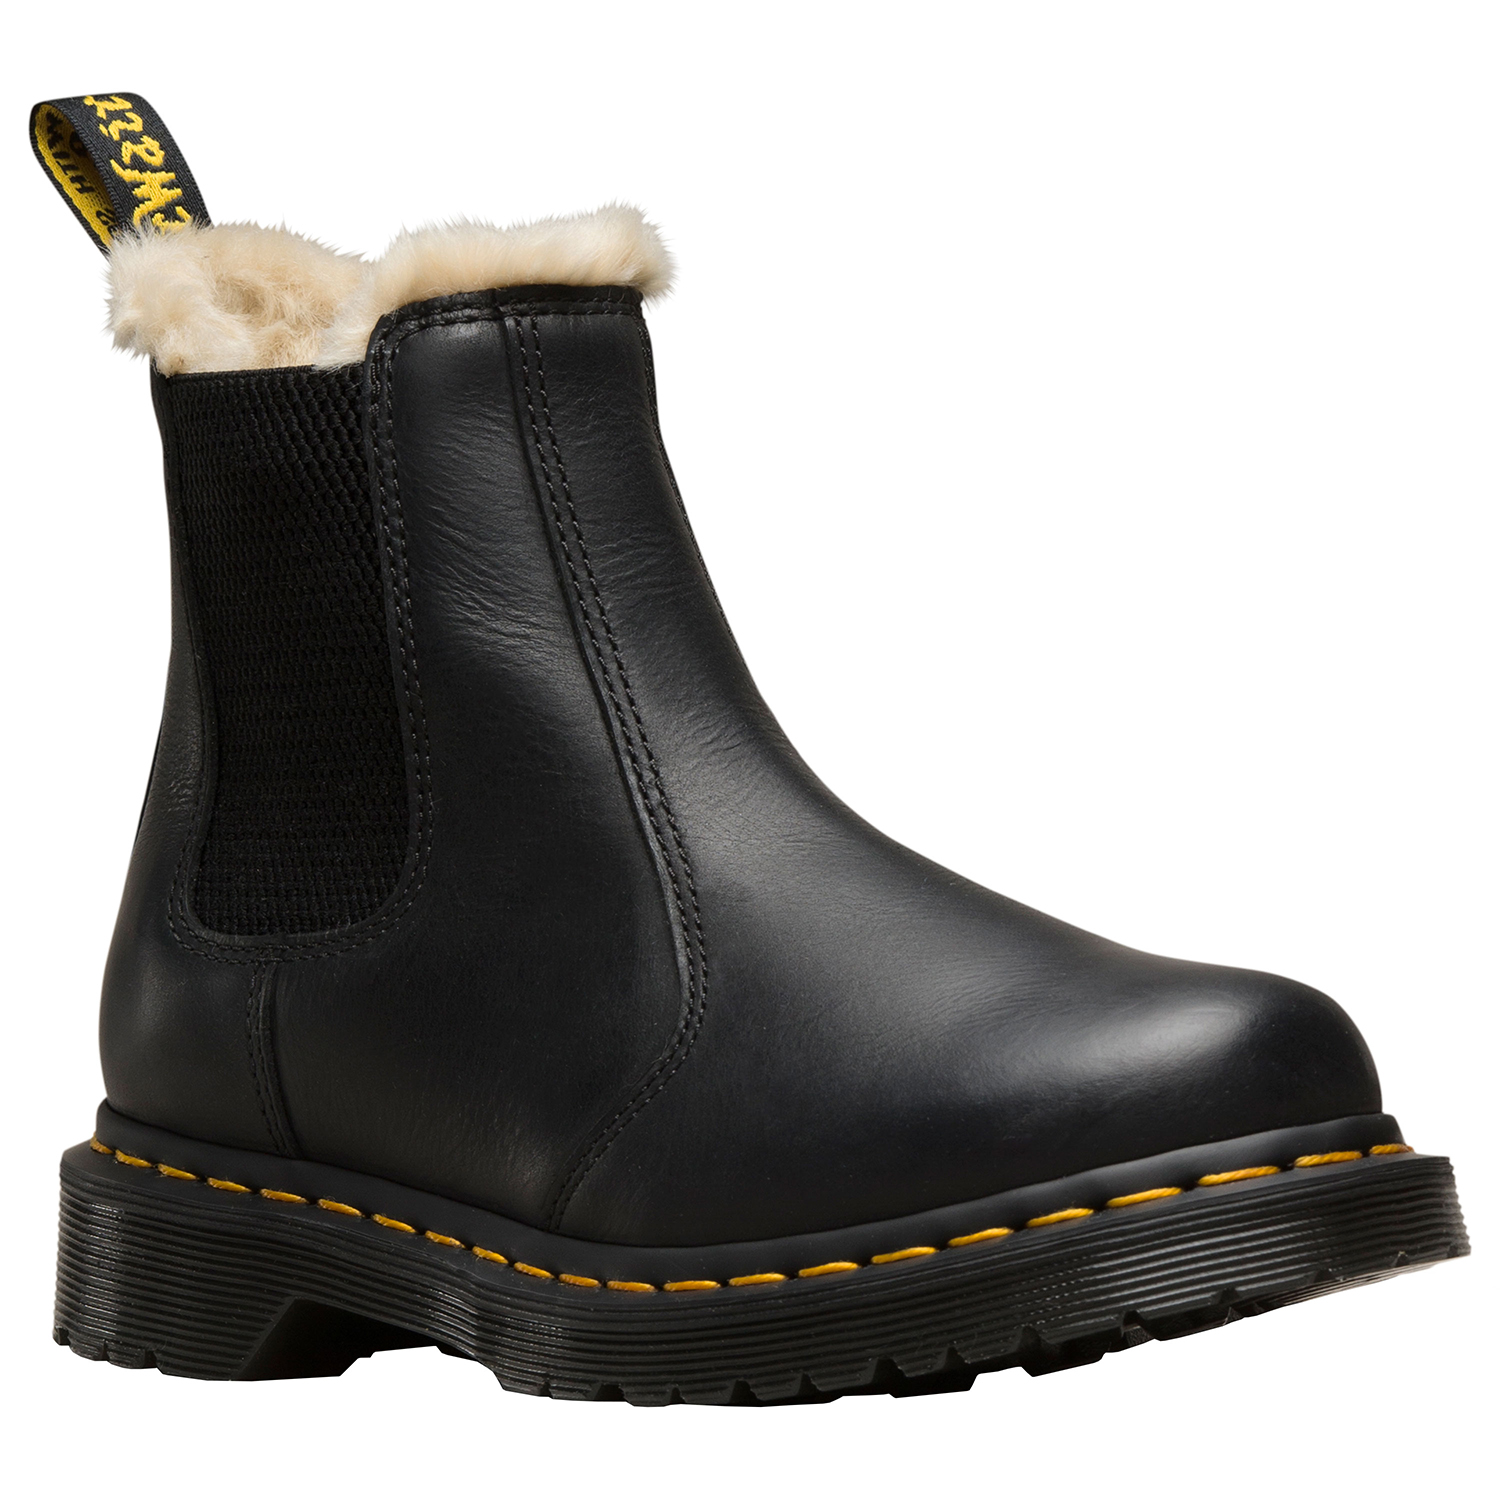 Dr Martens Leonore Ladies Boots available from Blackleaf